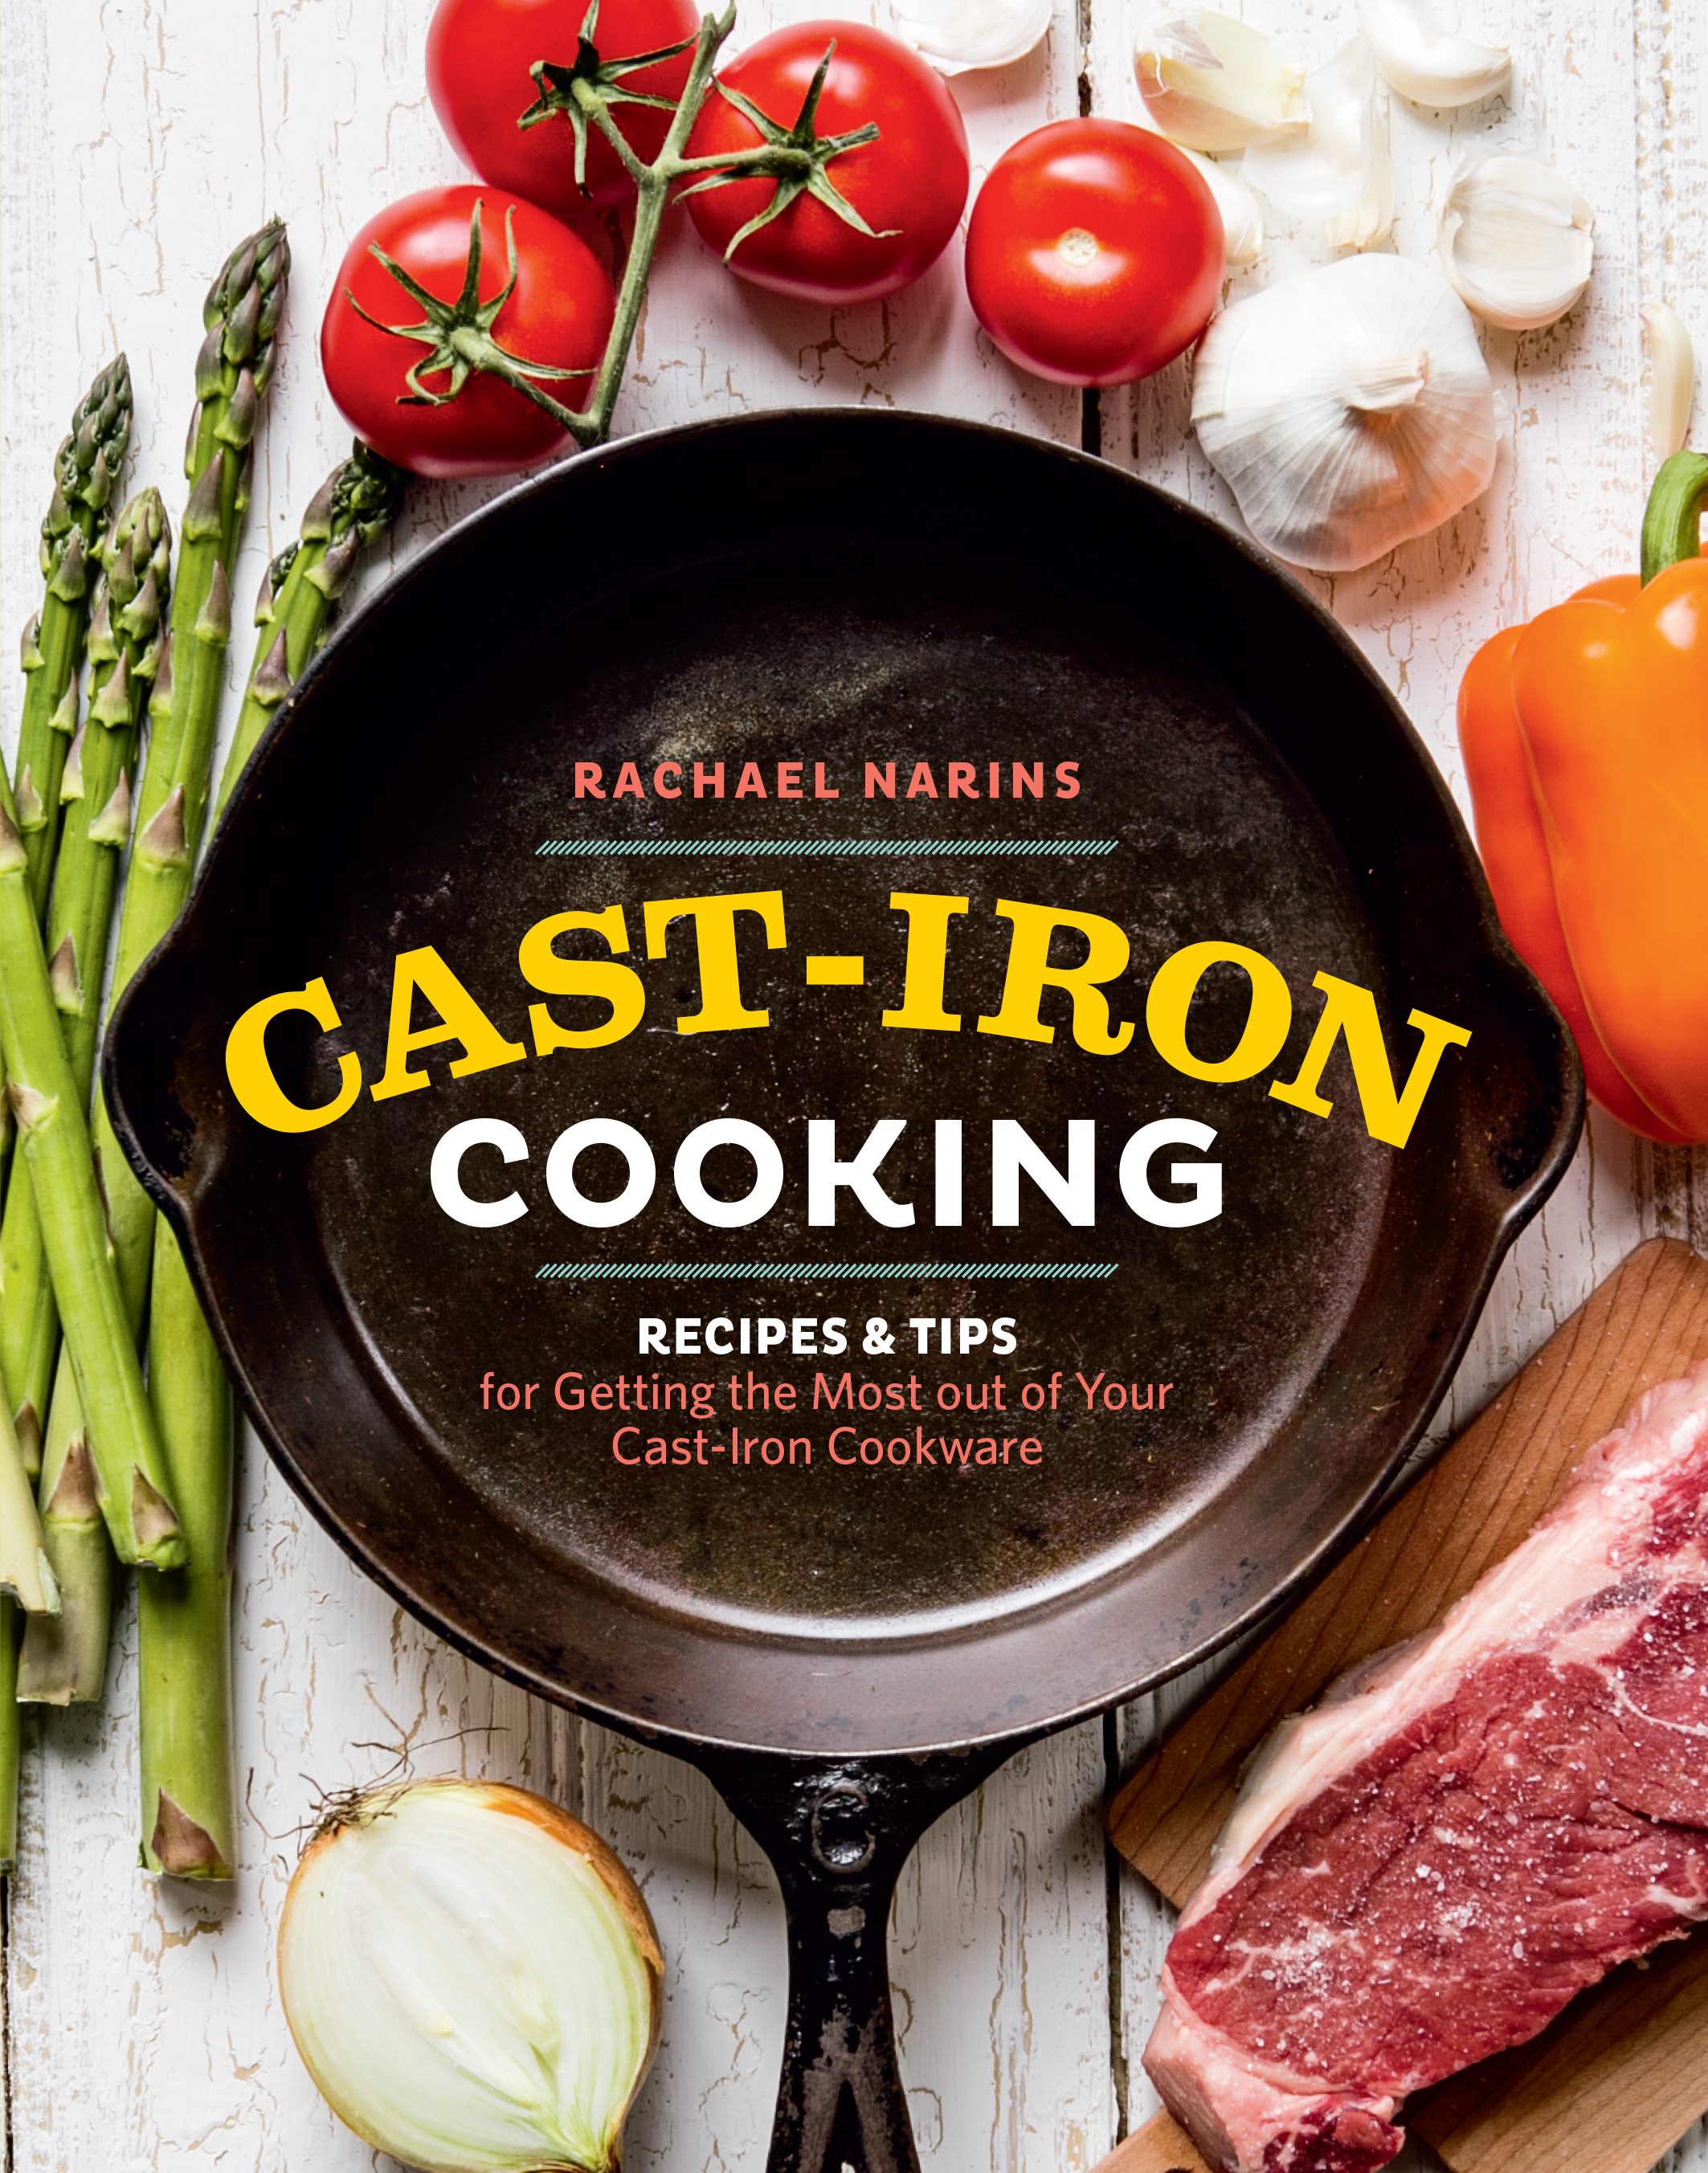 Cast-Iron Cooking Recipes & Tips for Getting the Most out of Your Cast-Iron Cookware - Rachael Narins